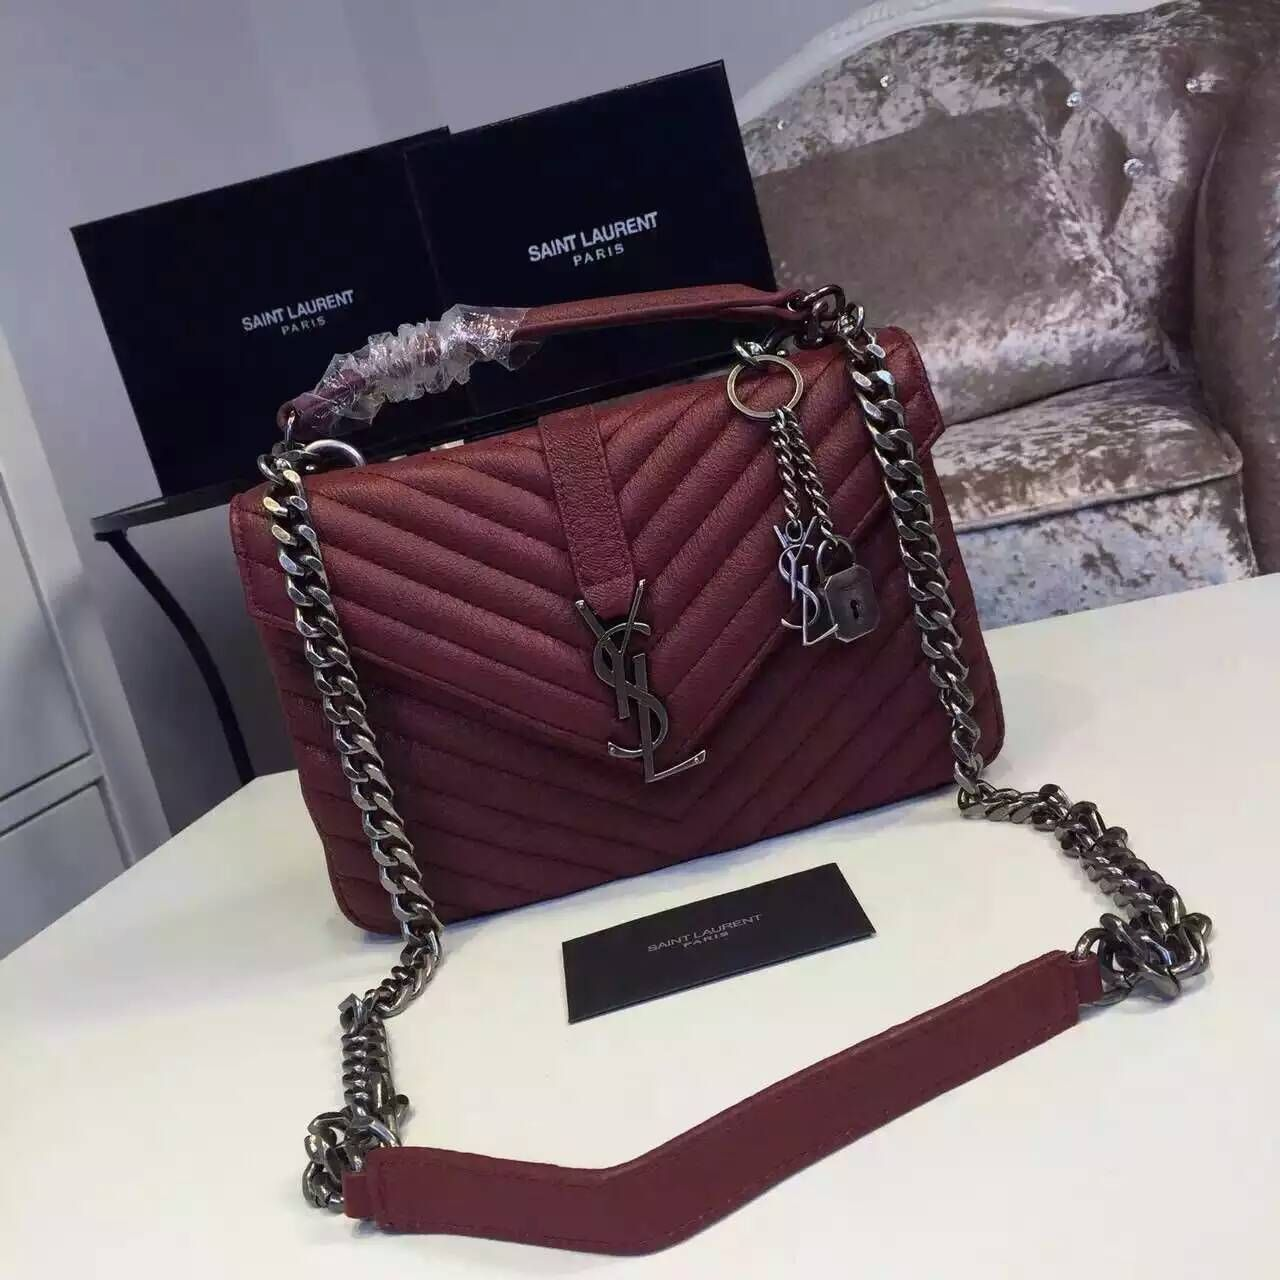 2016 New Saint Laurent Bag Cheap Sale Saint Laurent